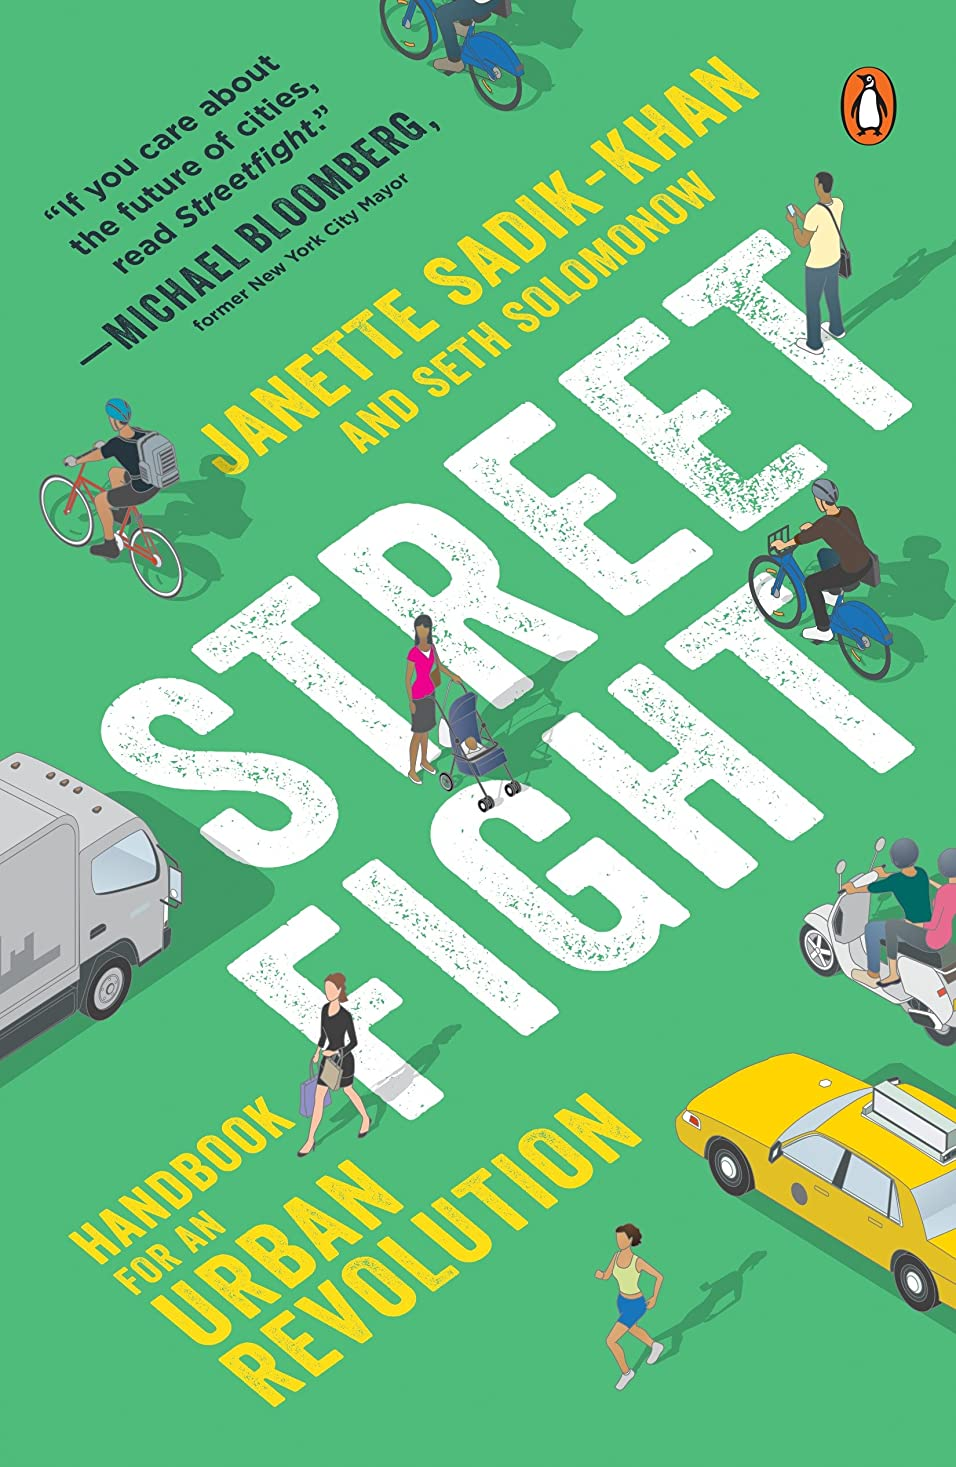 衣服申請中実施するStreetfight: Handbook for an Urban Revolution (English Edition)